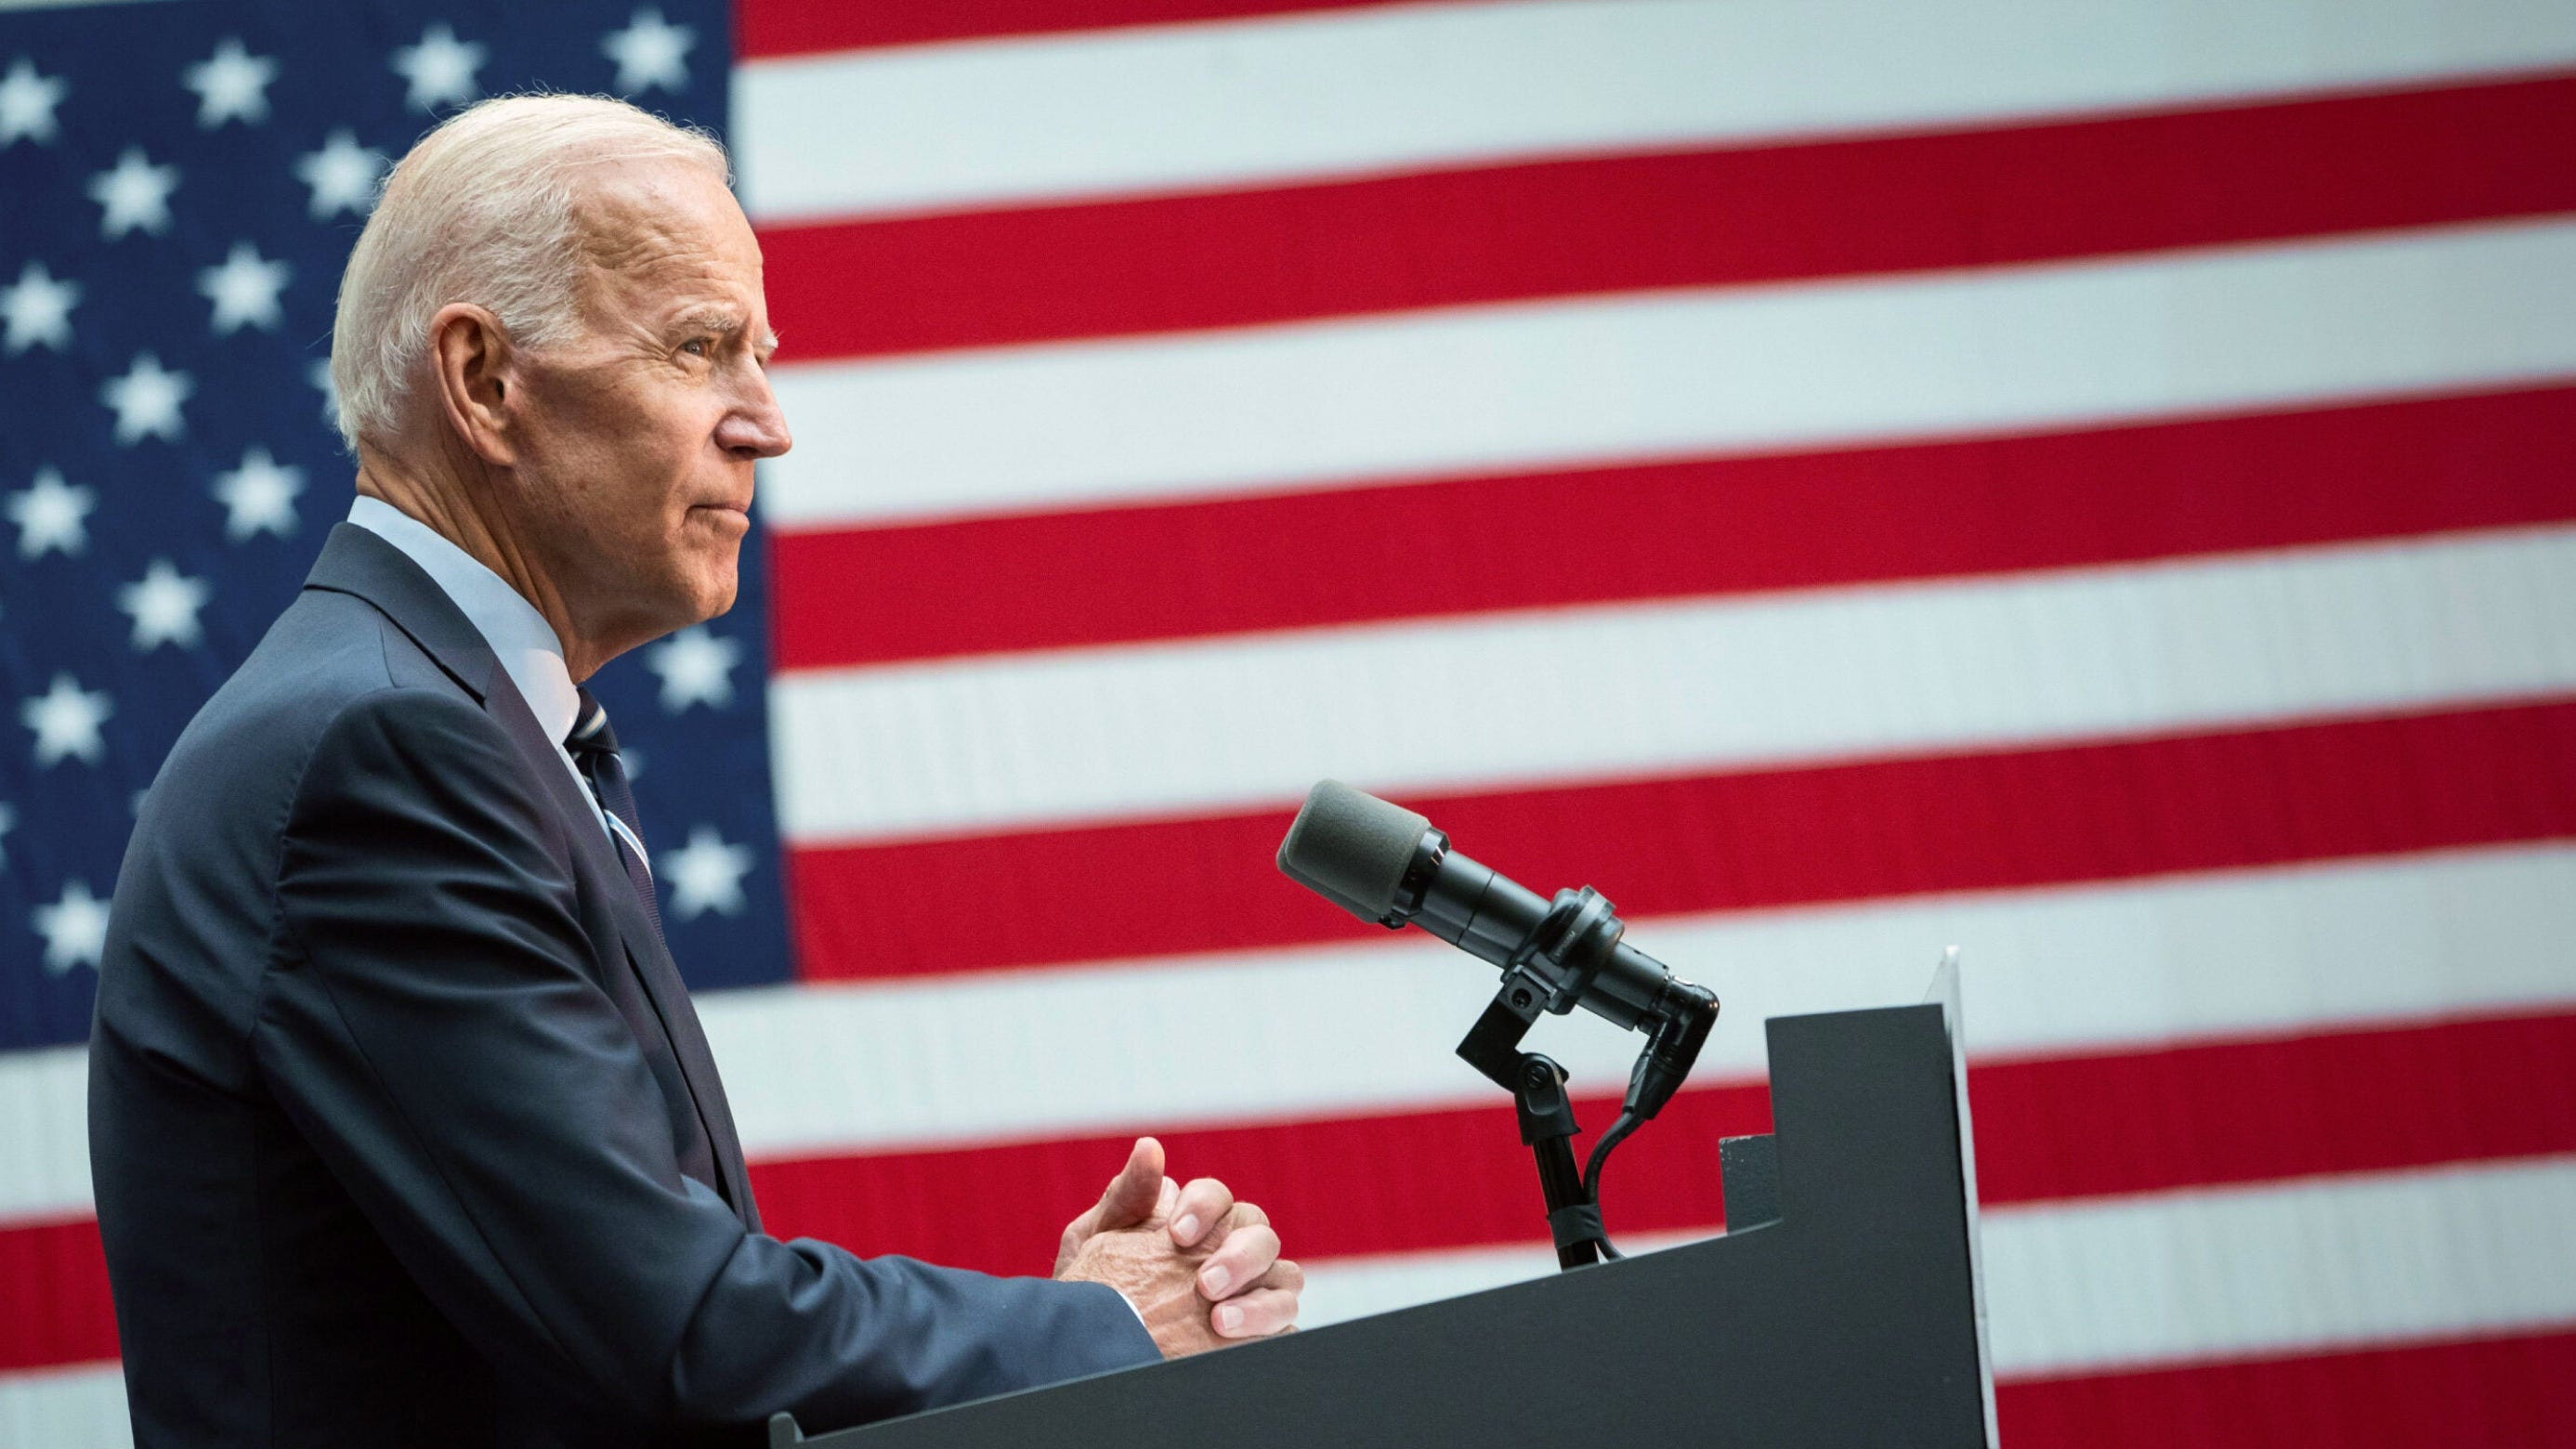 Biden's actions on guns, Chauvin trial, The Masters: 5 things to know Thursday - USA TODAY